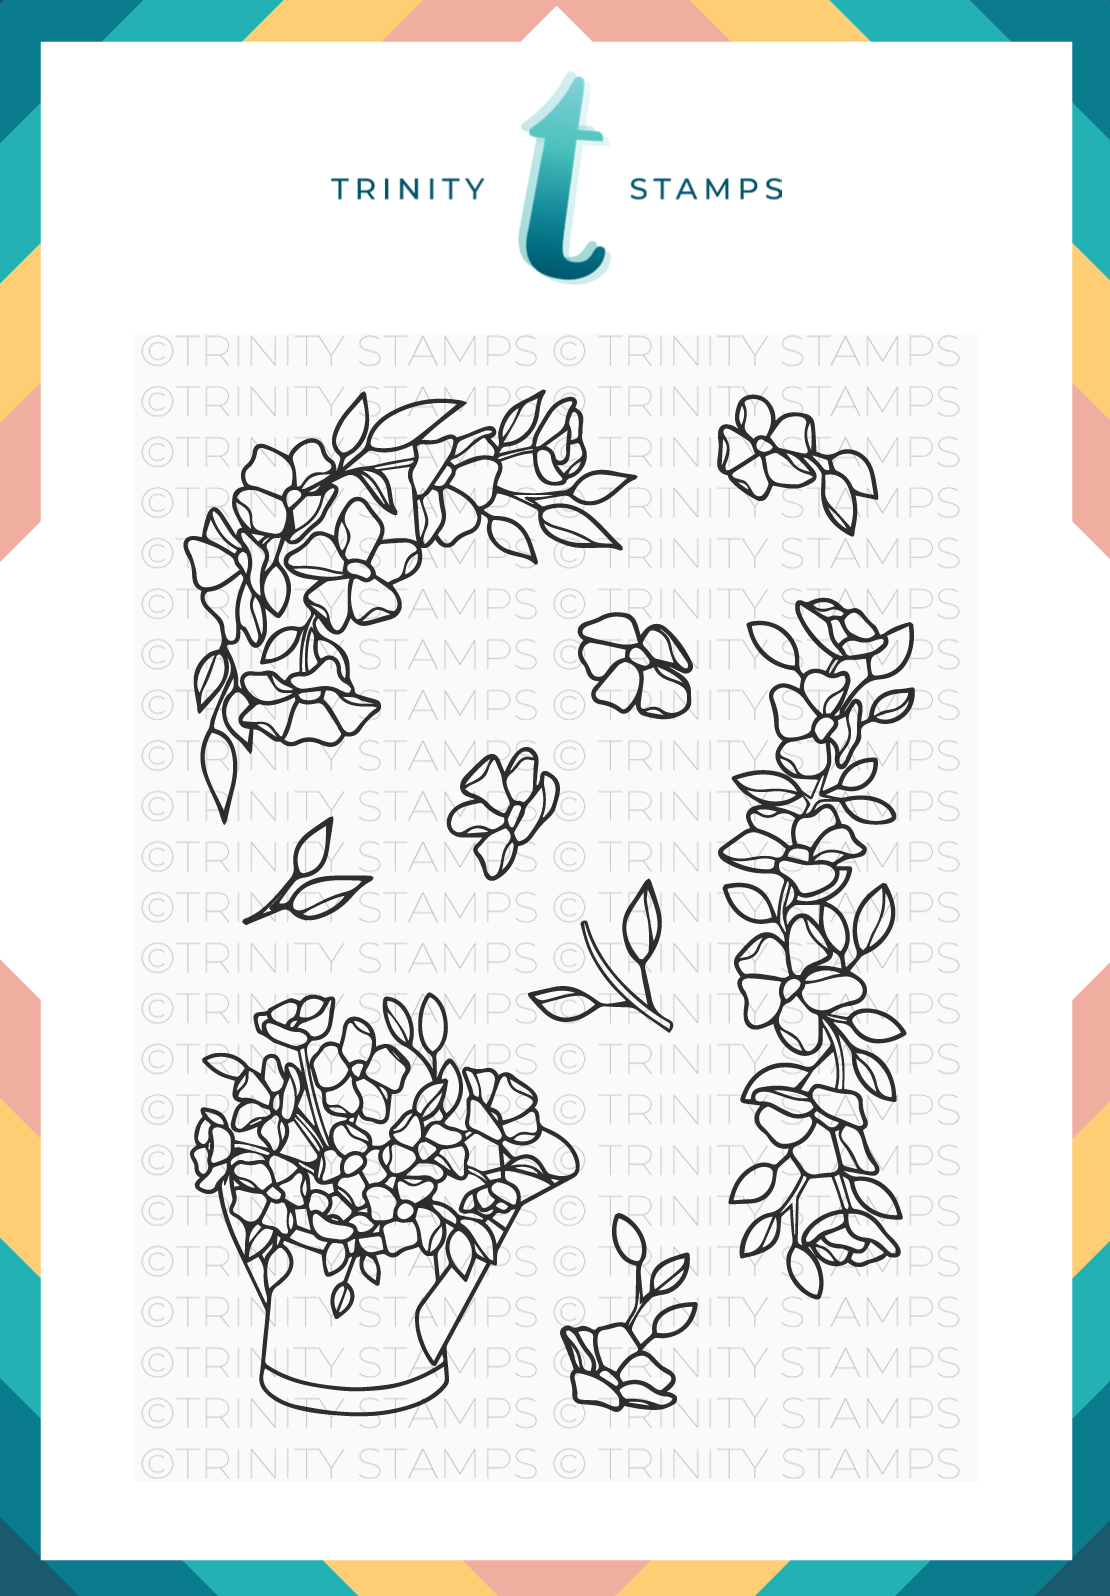 Trinity Stamps - Hopeful Flowers